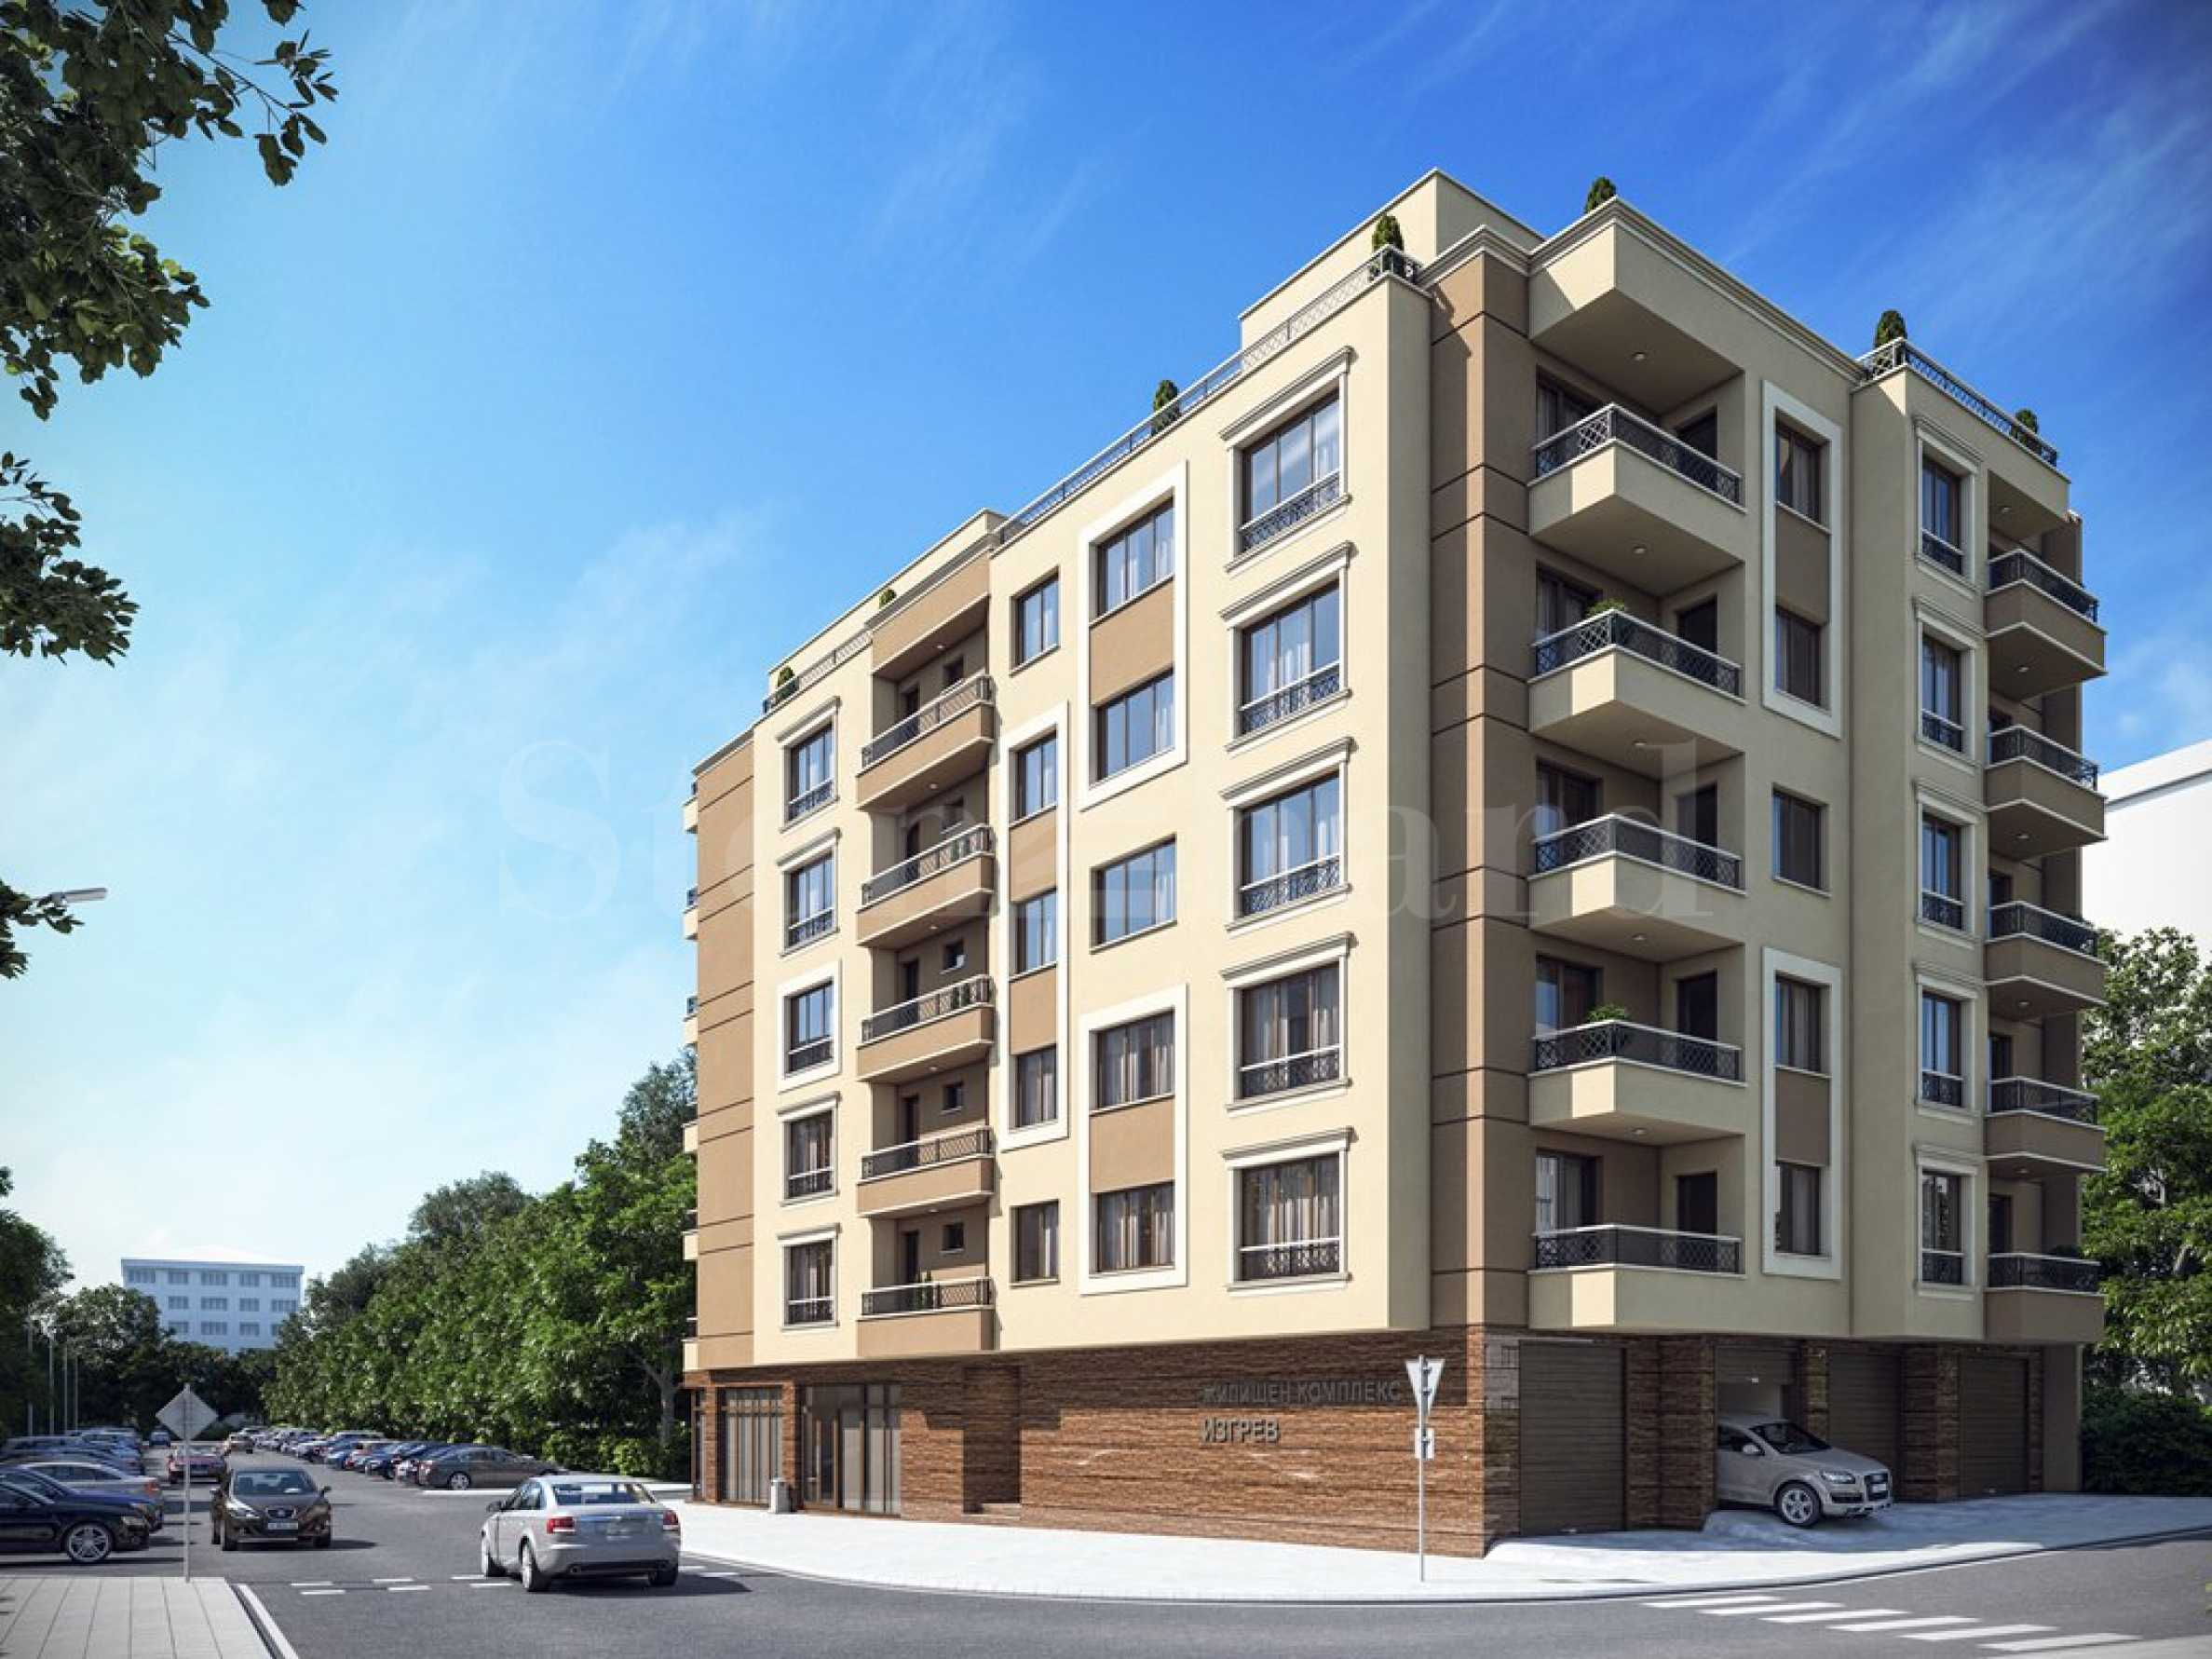 Apartments in a new residential building in Izgrev district, near Burgas Plaza Mall 2 - Stonehard